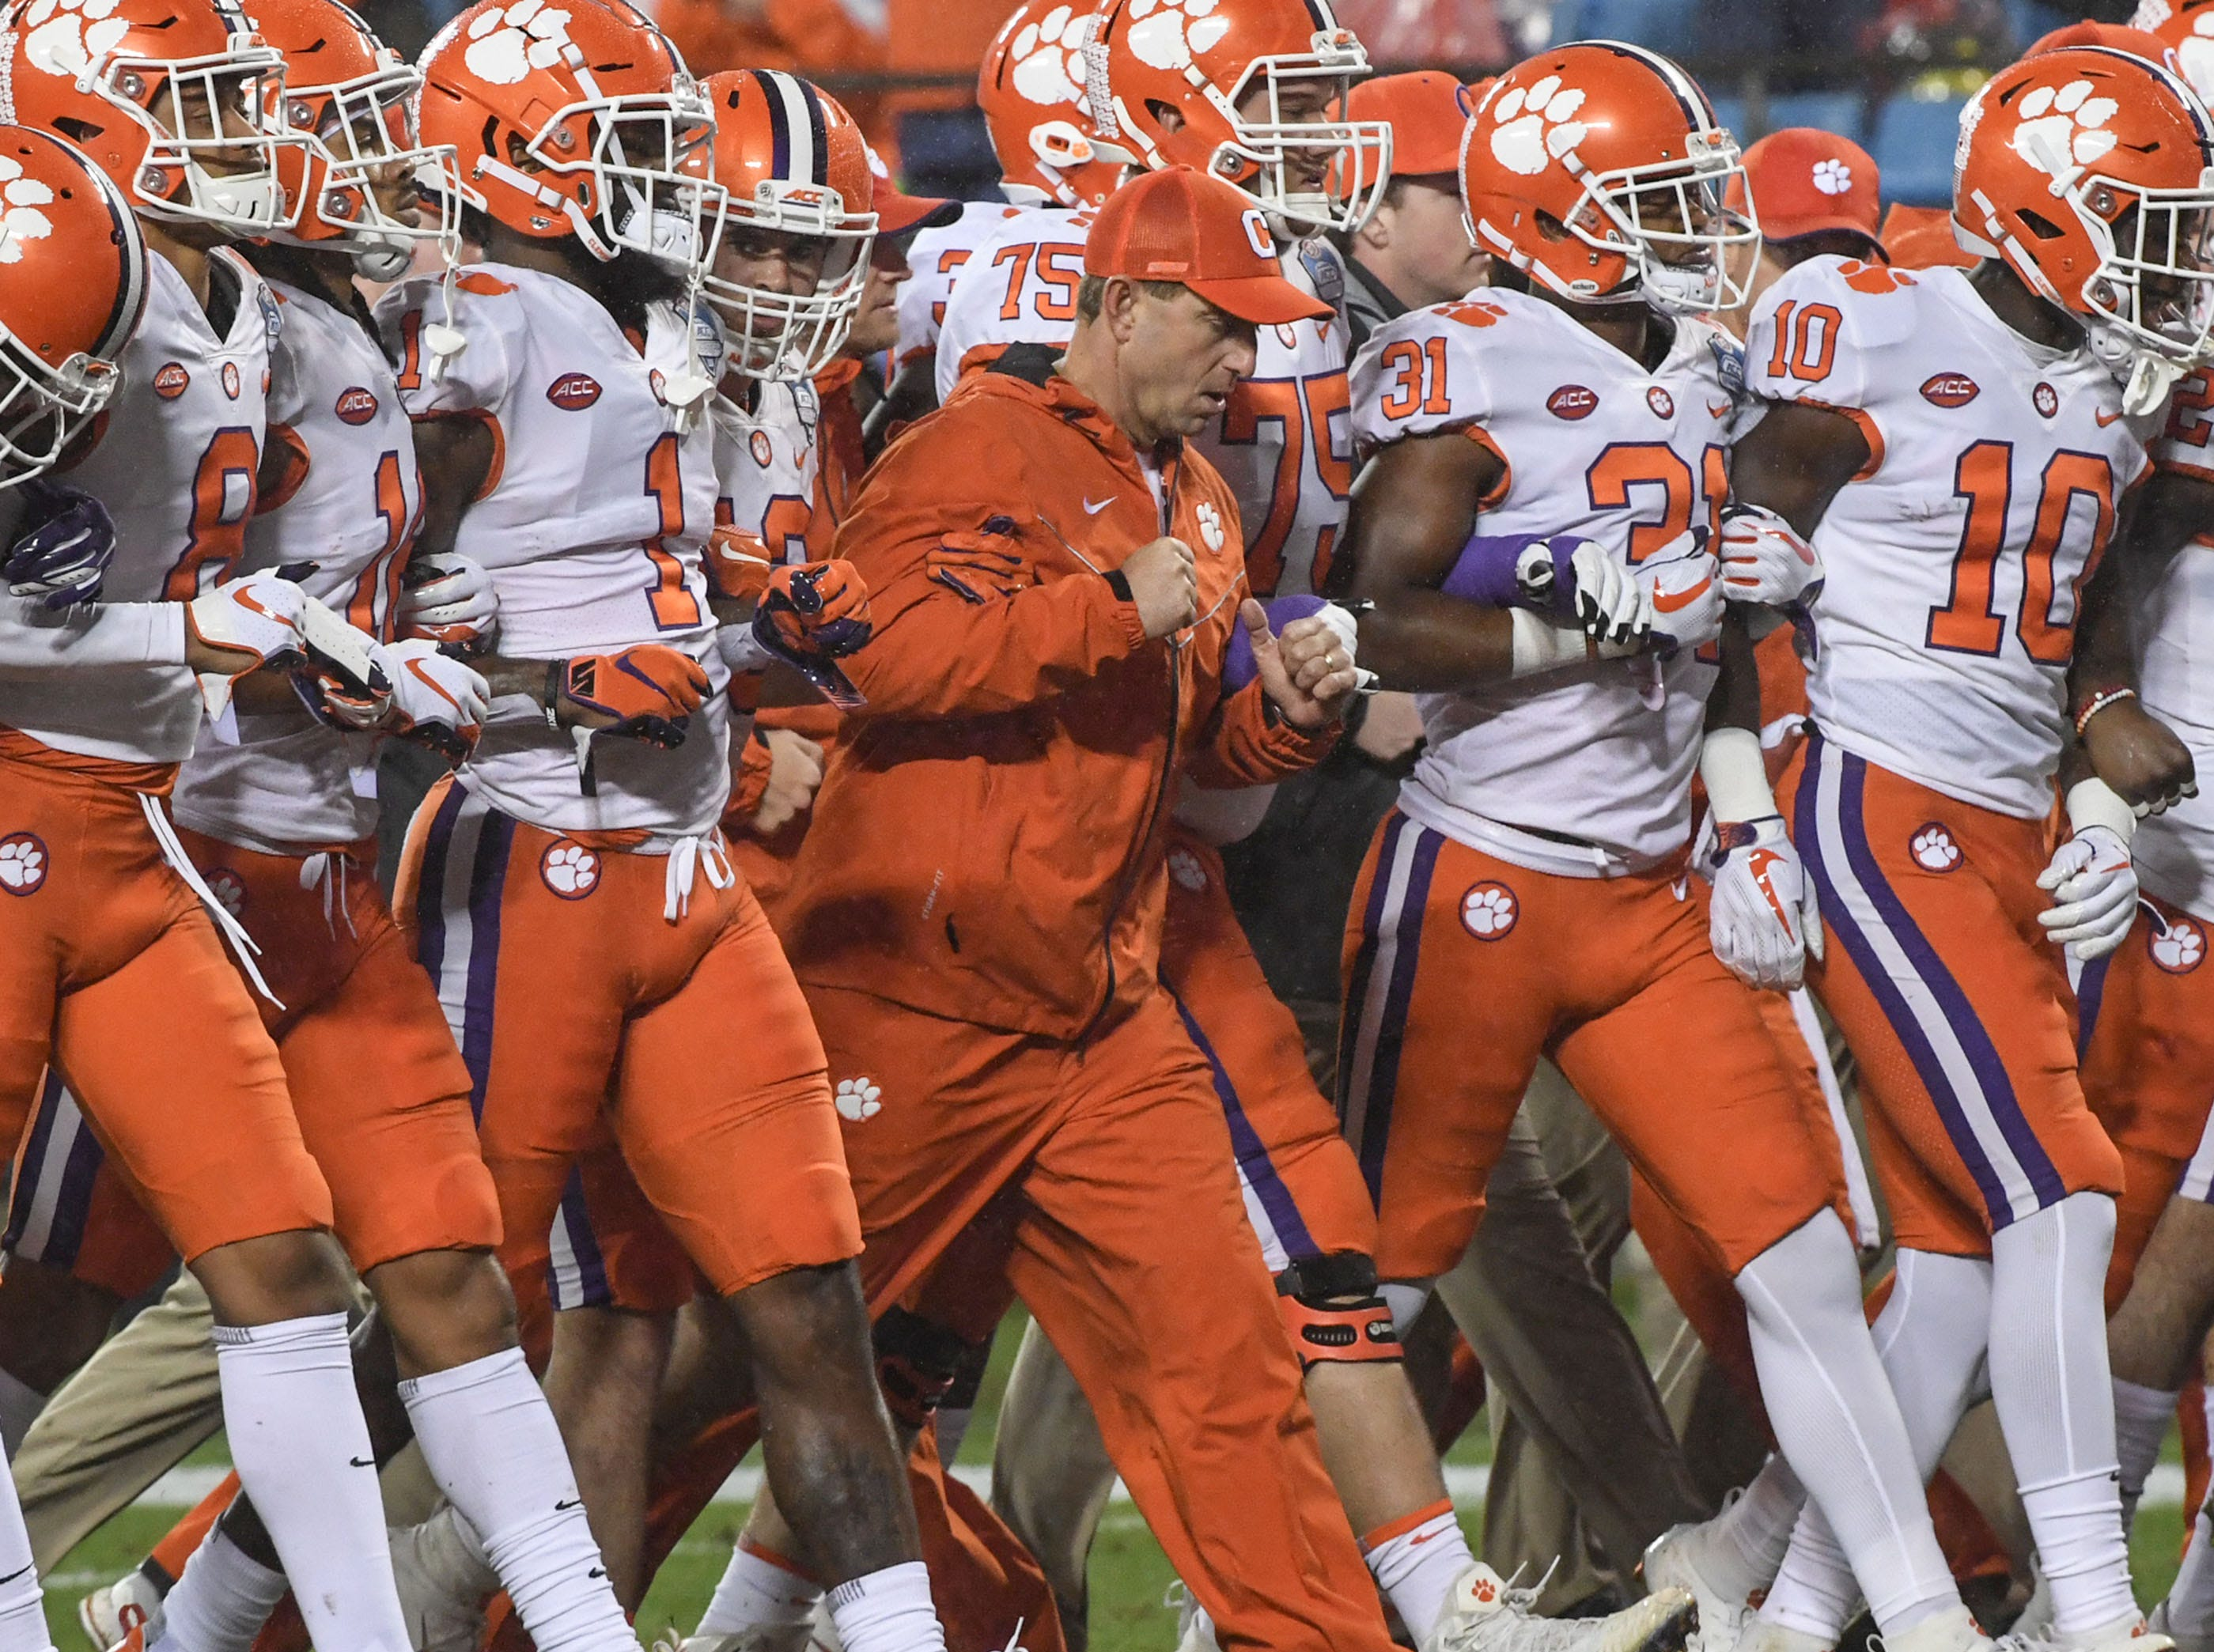 Clemson Head Coach Dabo Swinney and players walk together before the game of the Dr. Pepper ACC football championship at Bank of America Stadium in Charlotte, N.C. on Saturday, December 1, 2018.